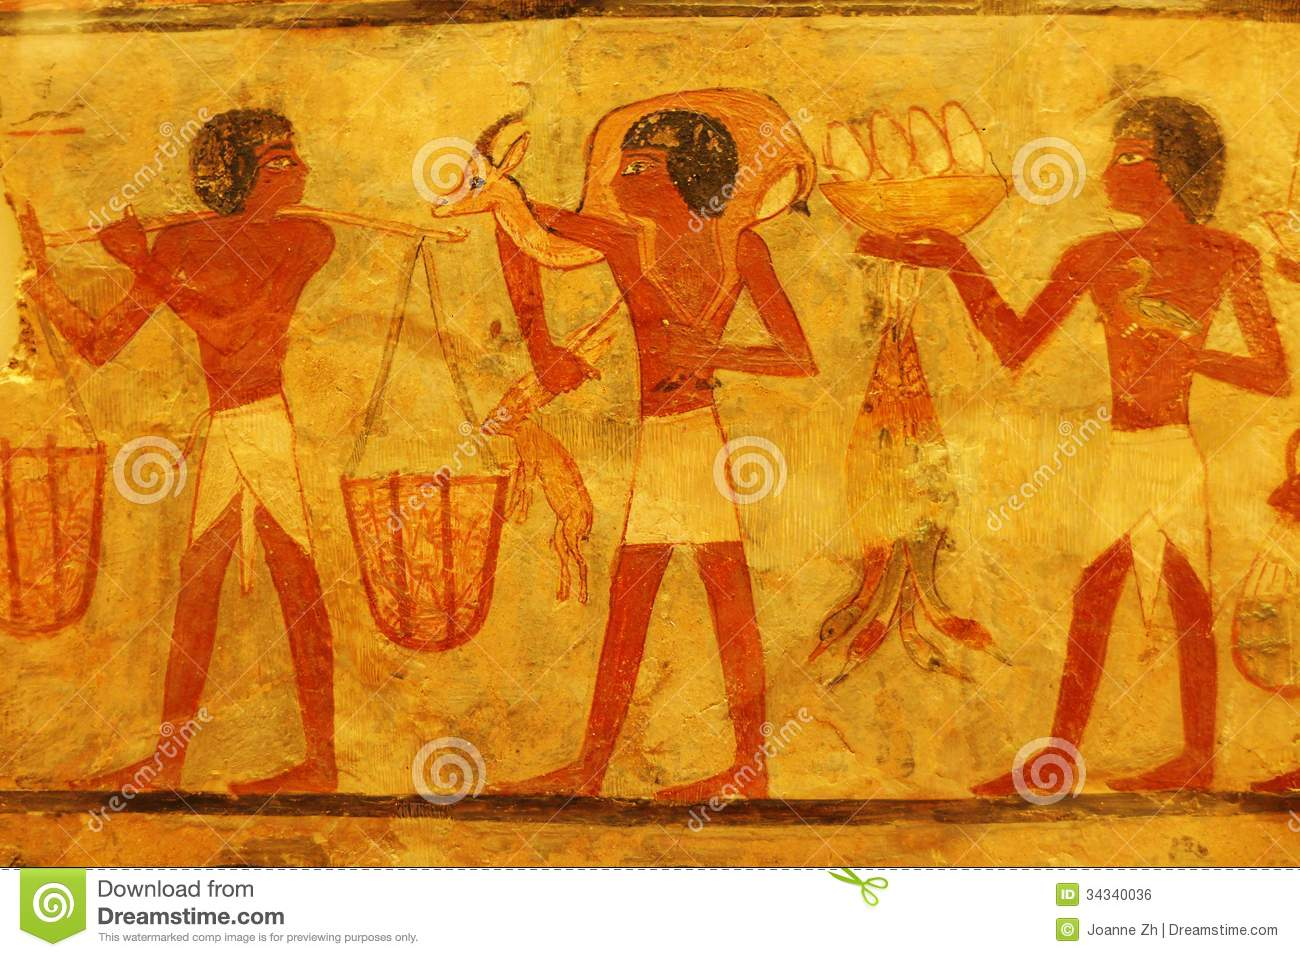 Ancient Egyptian painting in Louvre